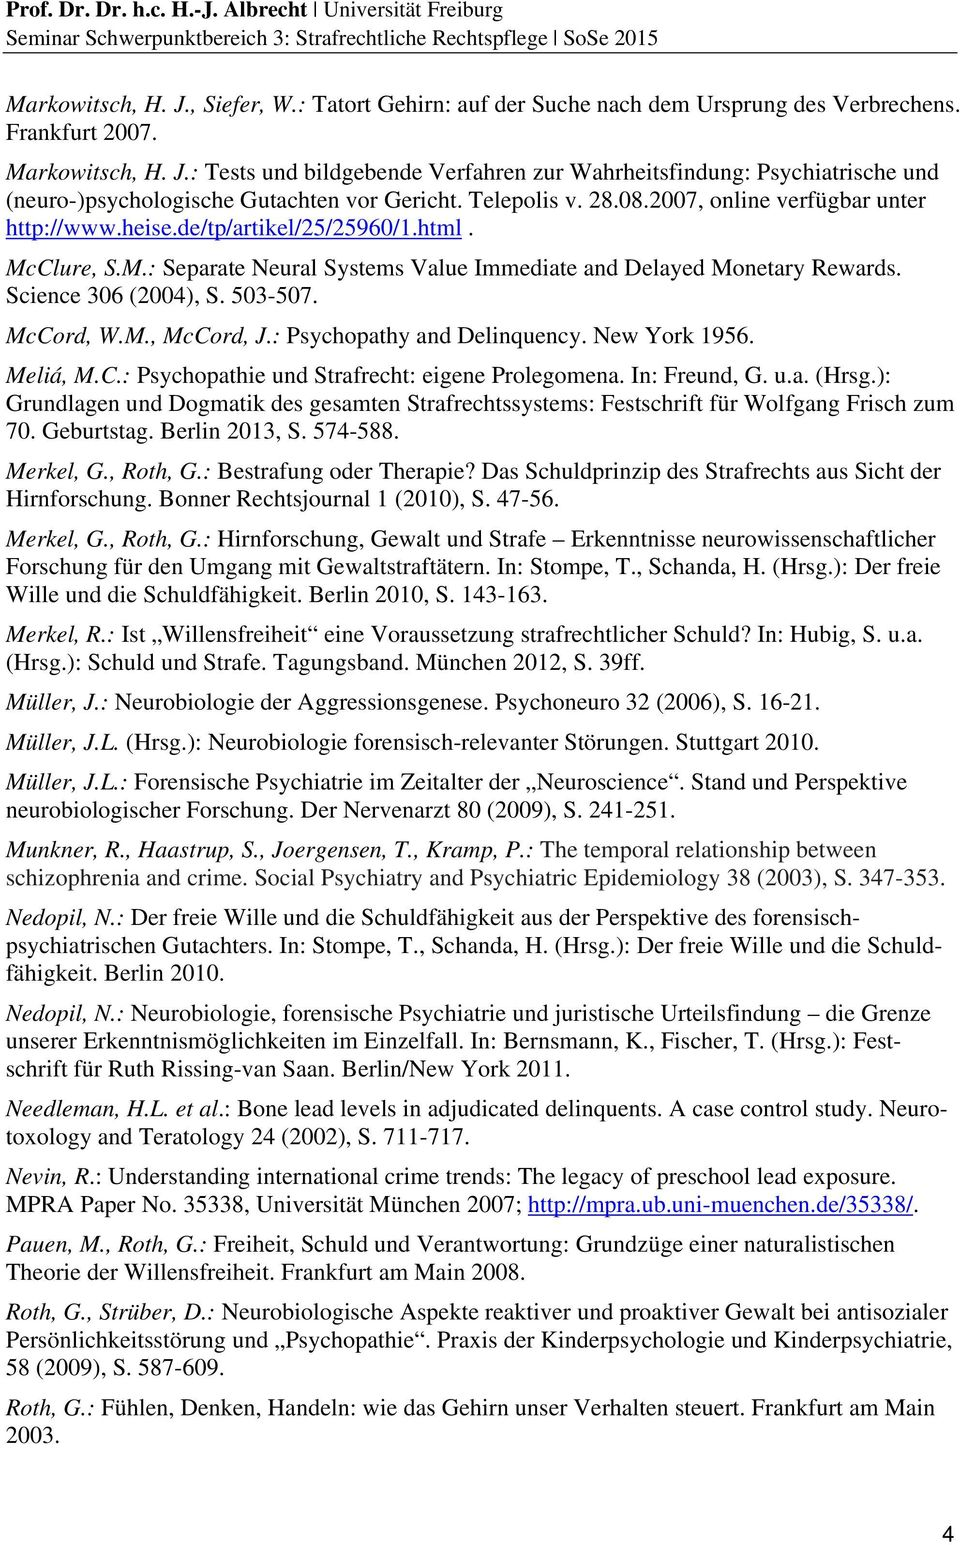 Science 306 (2004), S. 503-507. McCord, W.M., McCord, J.: Psychopathy and Delinquency. New York 1956. Meliá, M.C.: Psychopathie und Strafrecht: eigene Prolegomena. In: Freund, G. u.a. (Hrsg.